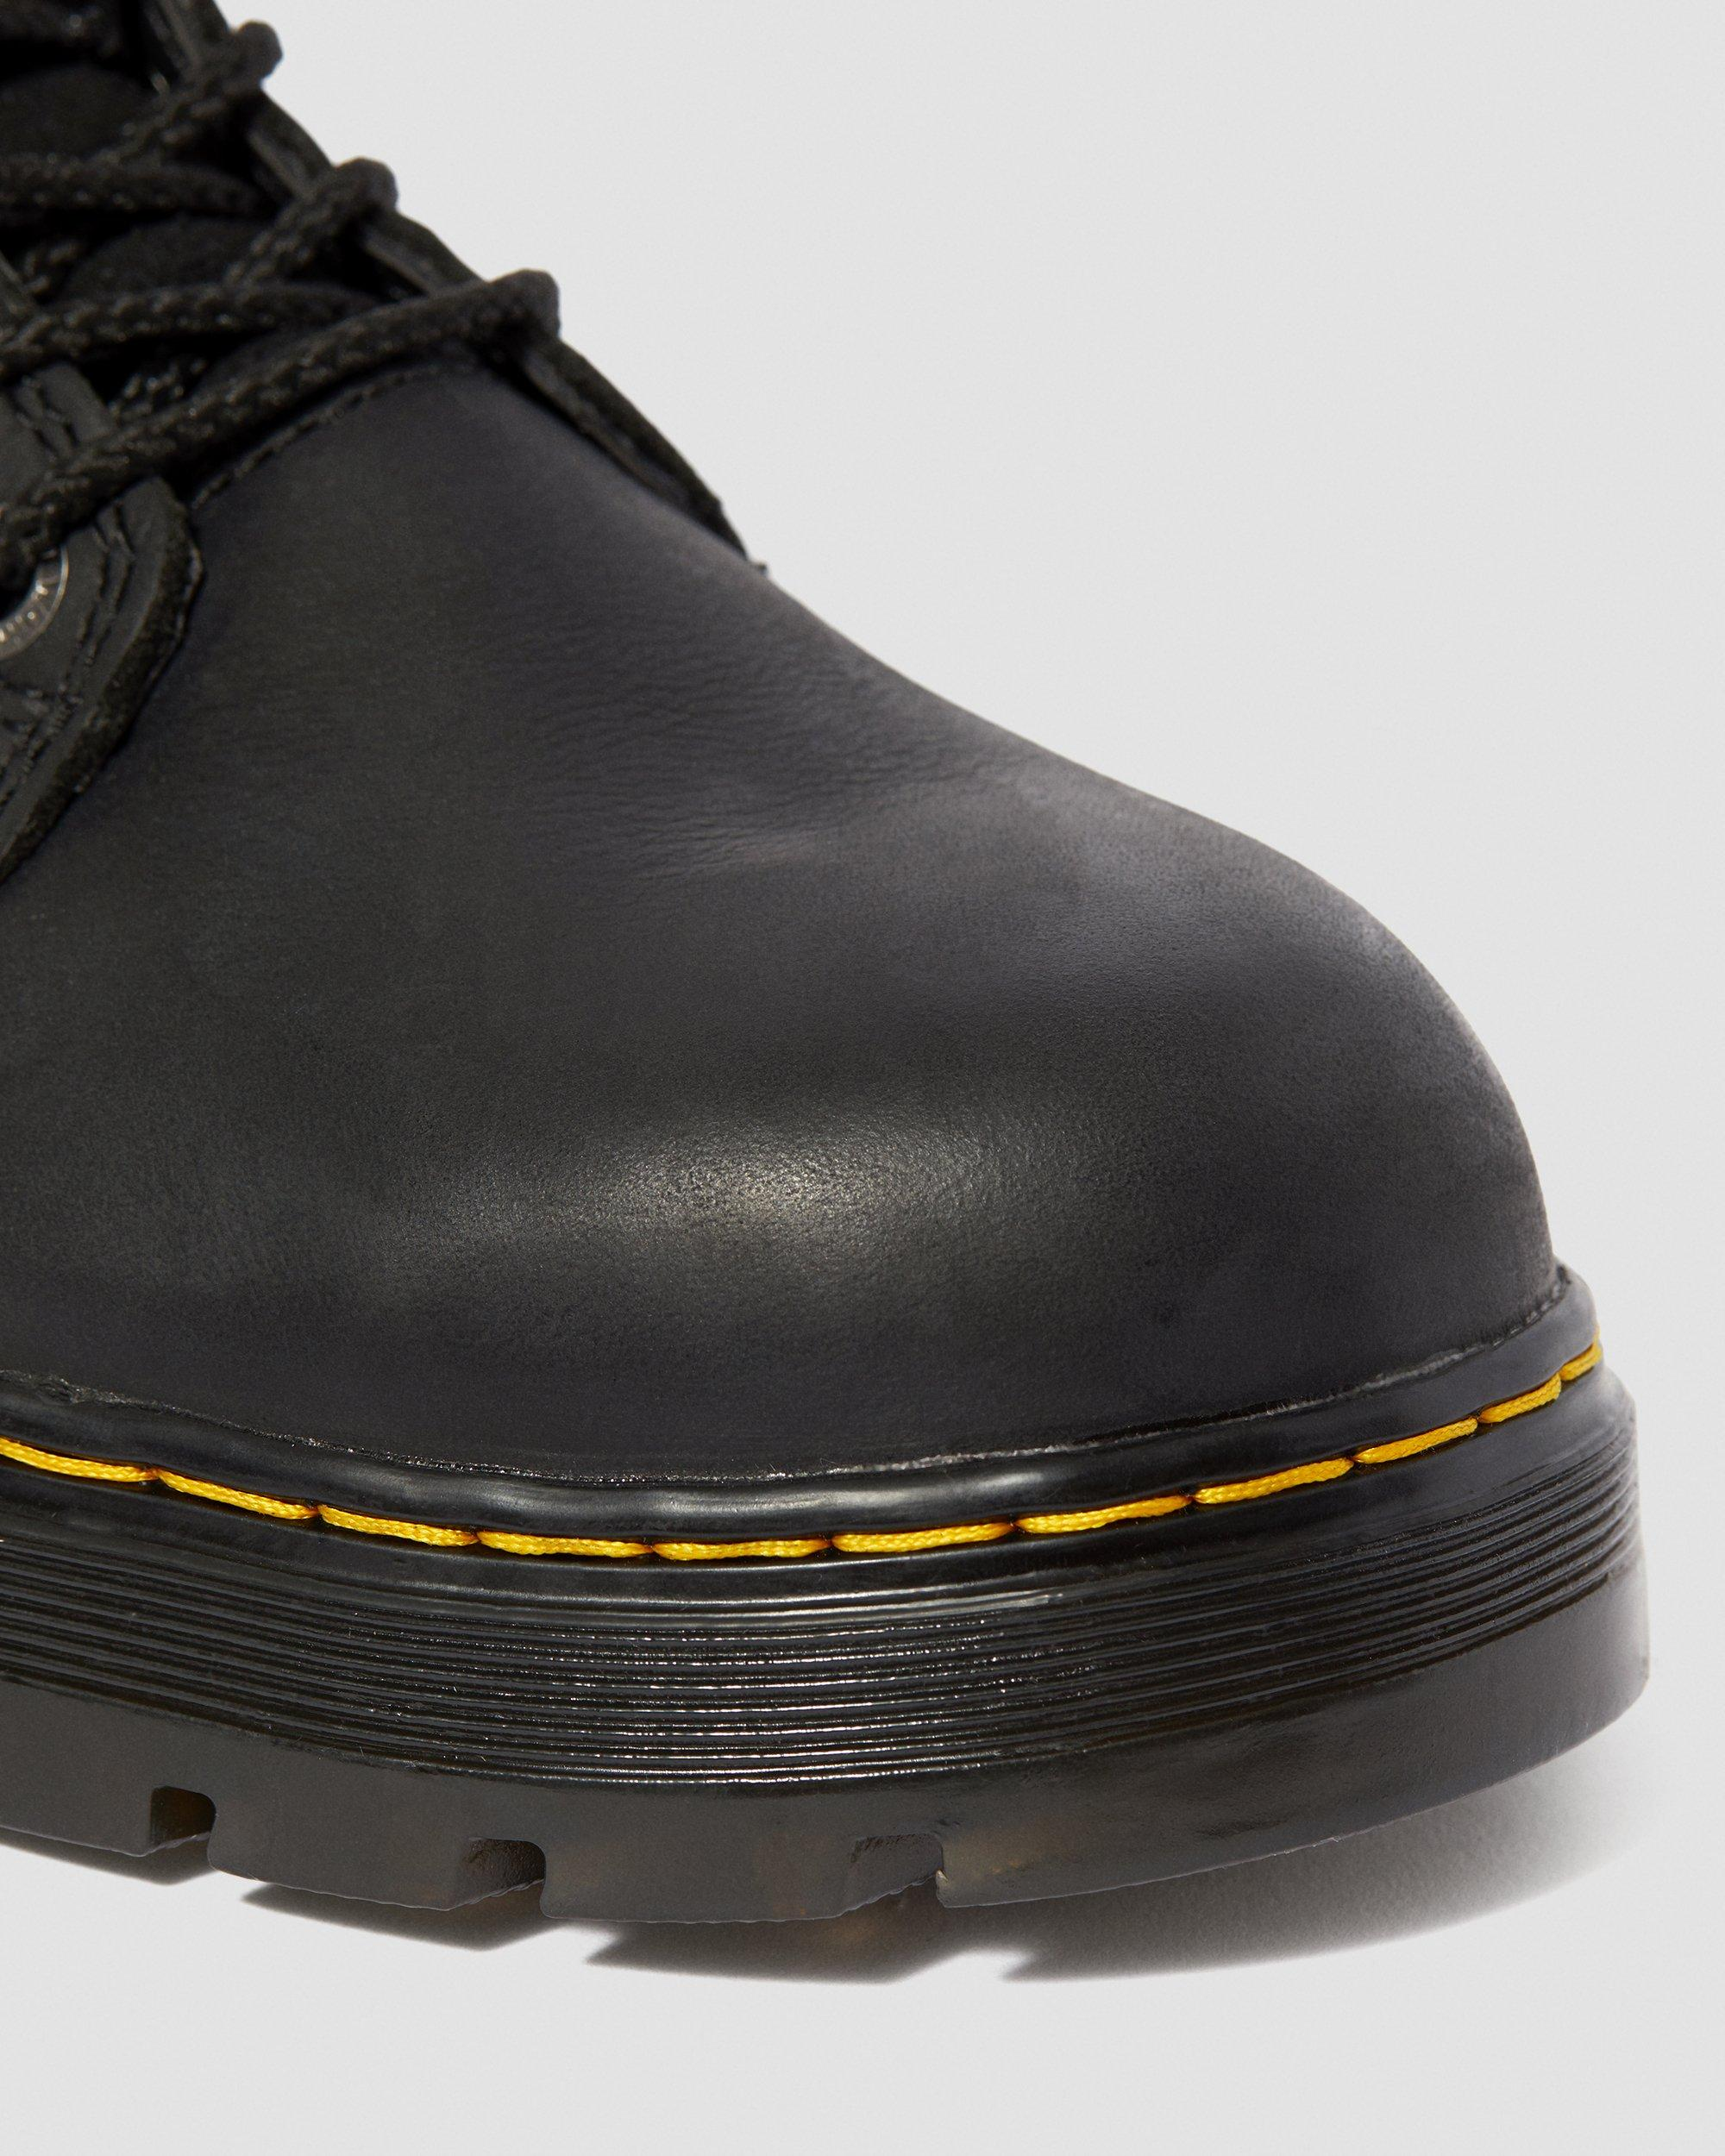 DR MARTENS WINCH EXTRA WIDE WORK BOOTS